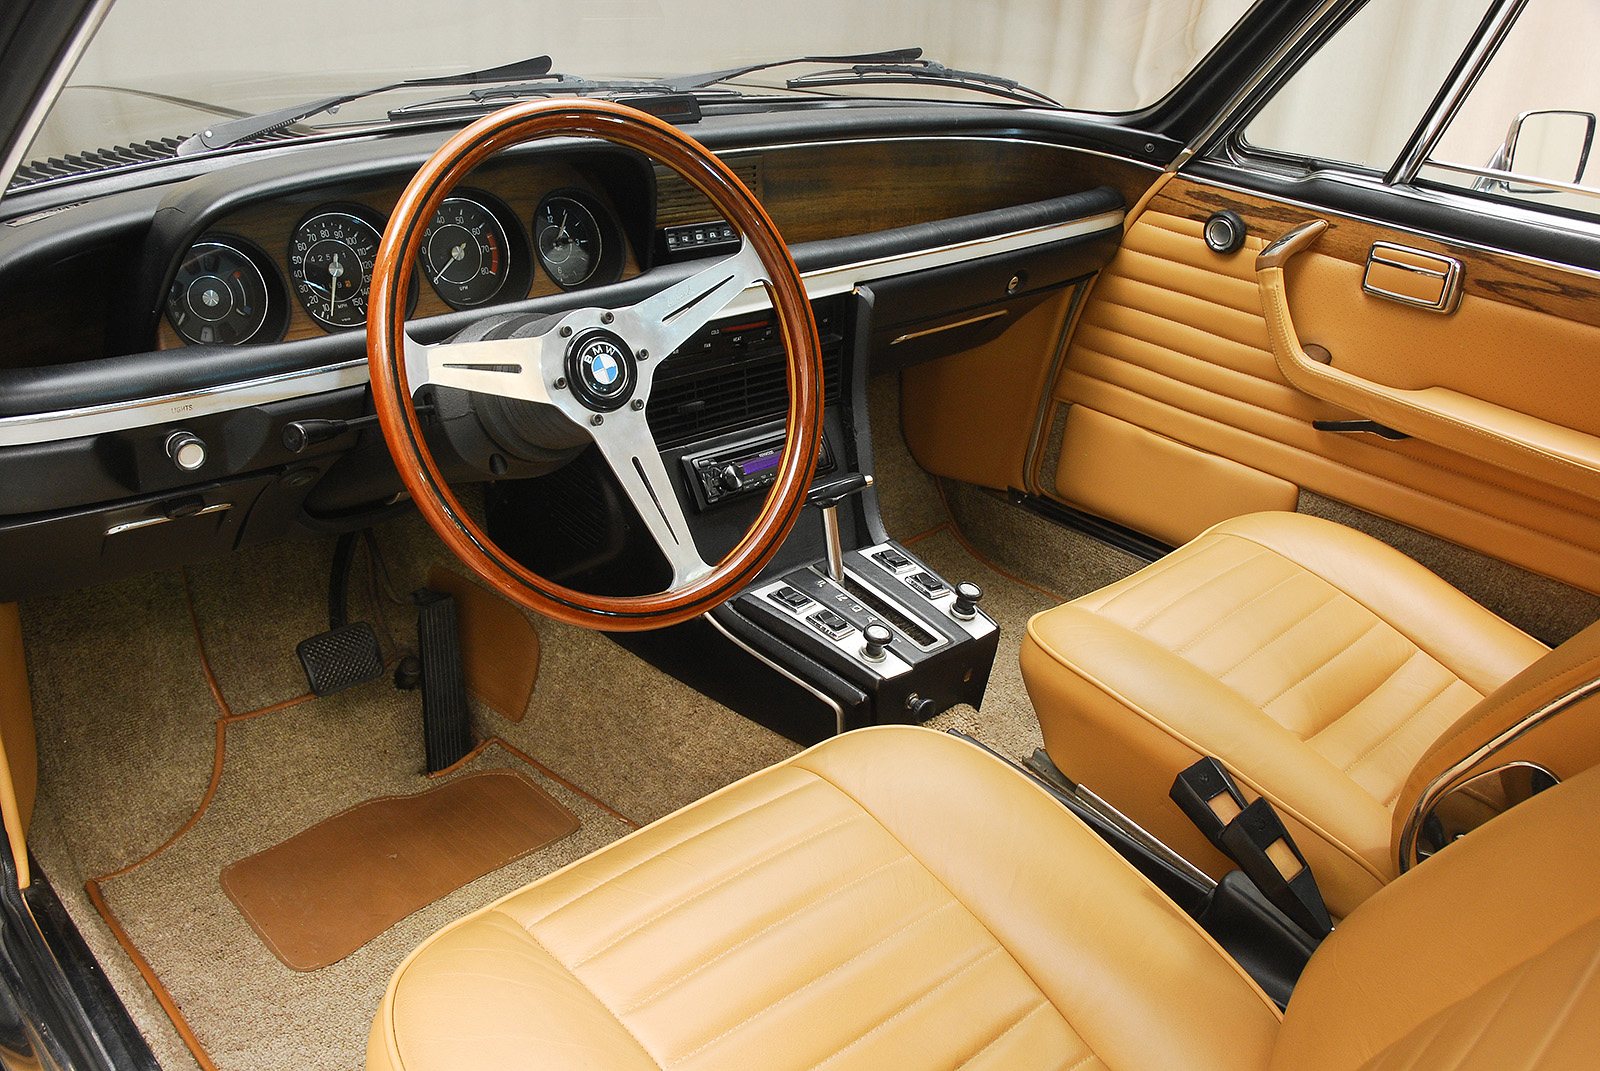 BMW E9 1968 - 1975 Coupe #3